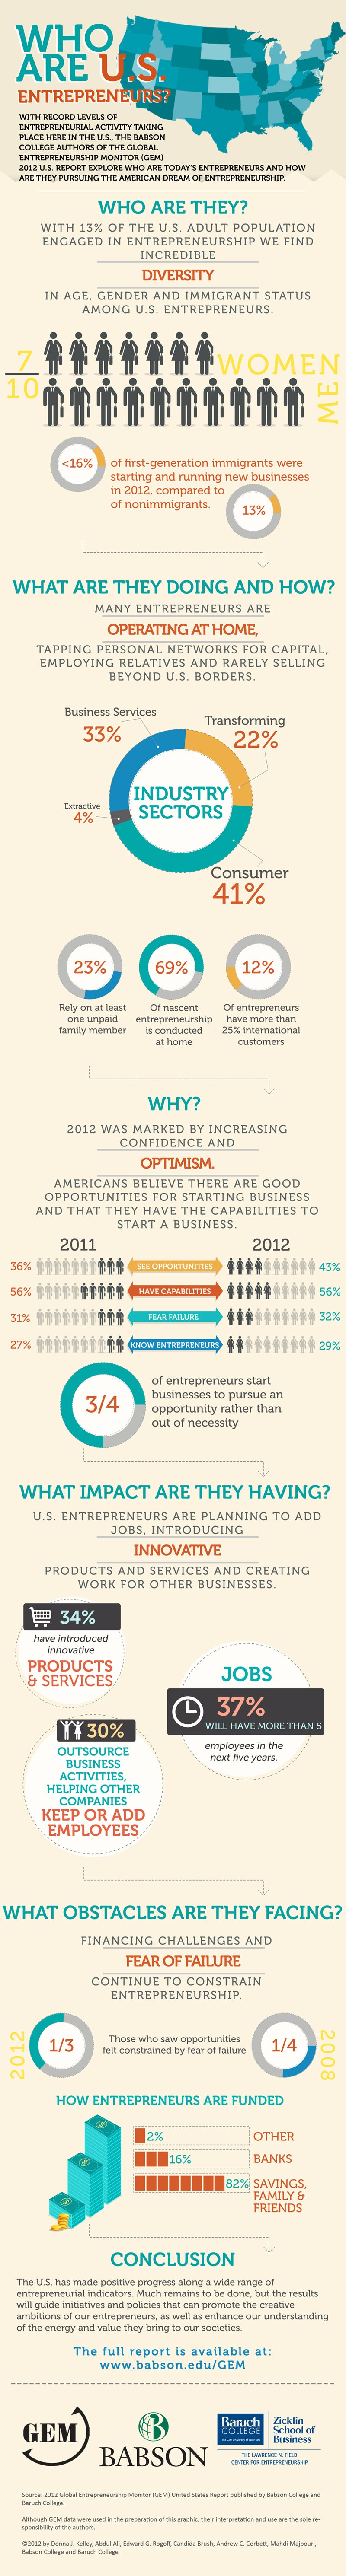 Entrepreneurship in the U.S. Reaches Highest Level in More Than a Decade